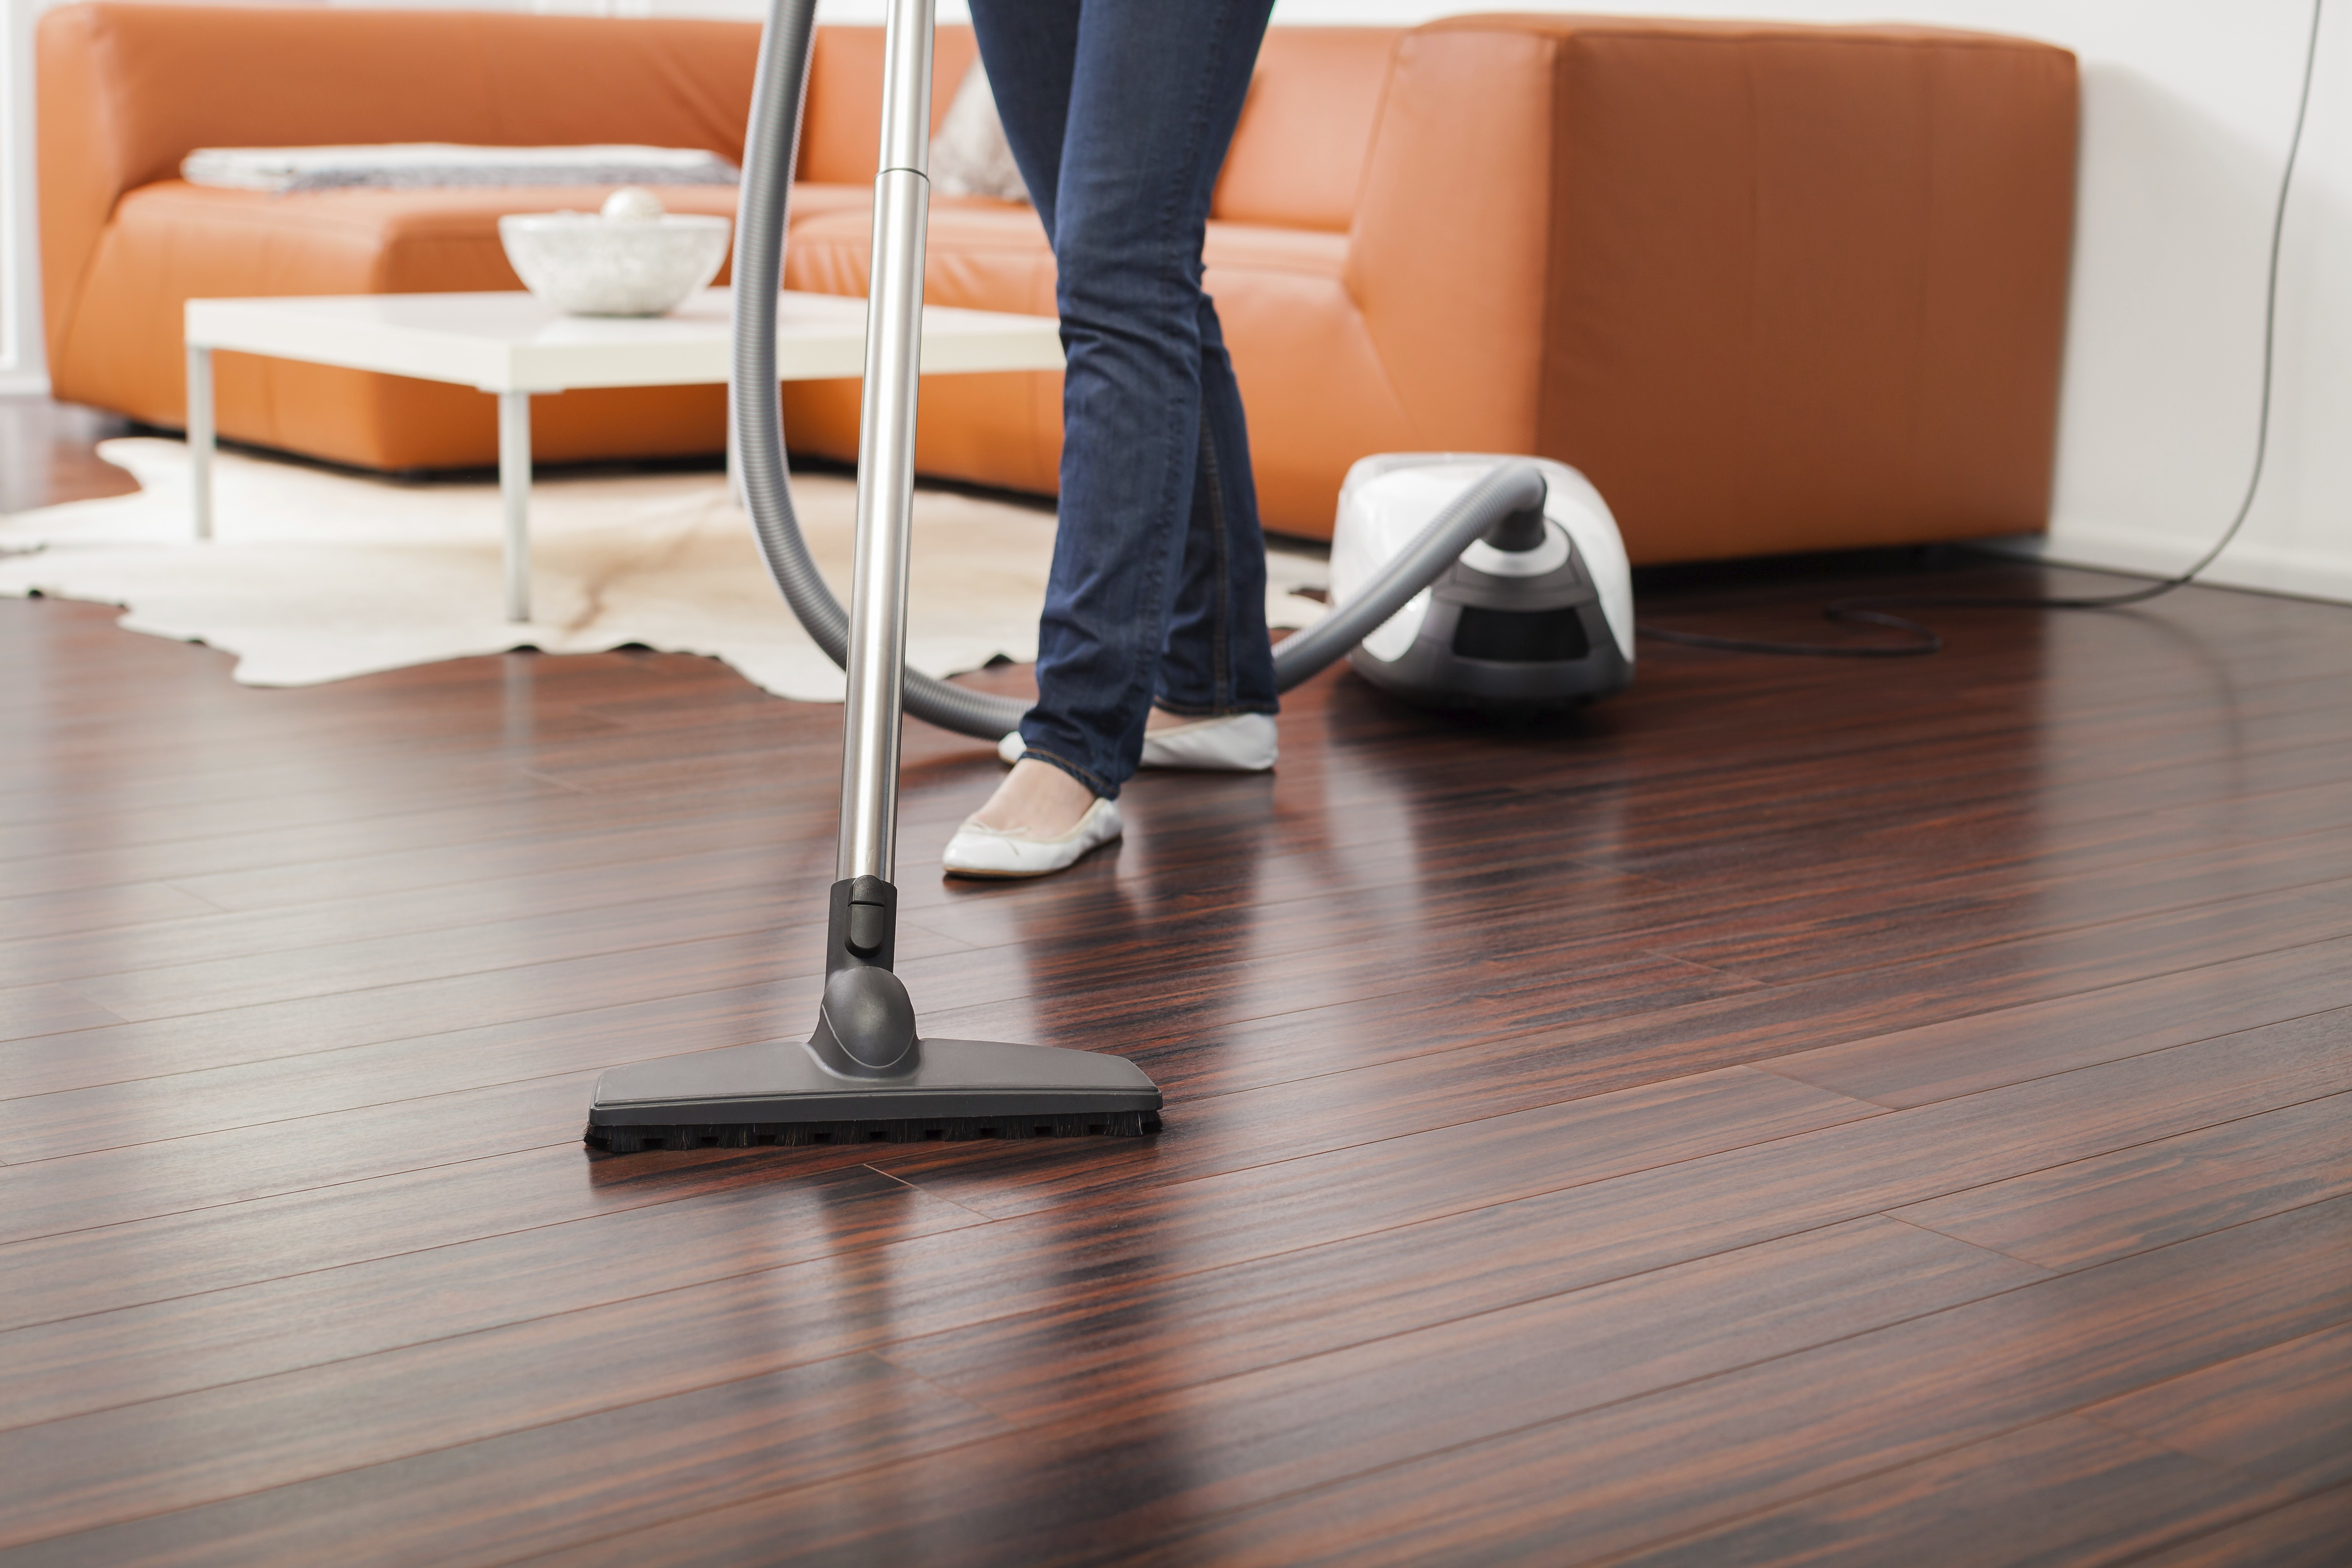 can you clean hardwood floors with vinegar of cleaning hardwood floors with vinegar how to clean your hardwood with regard to cleaning hardwood floors with vinegar how to clean your hardwood floors with vinegar inspirational how to